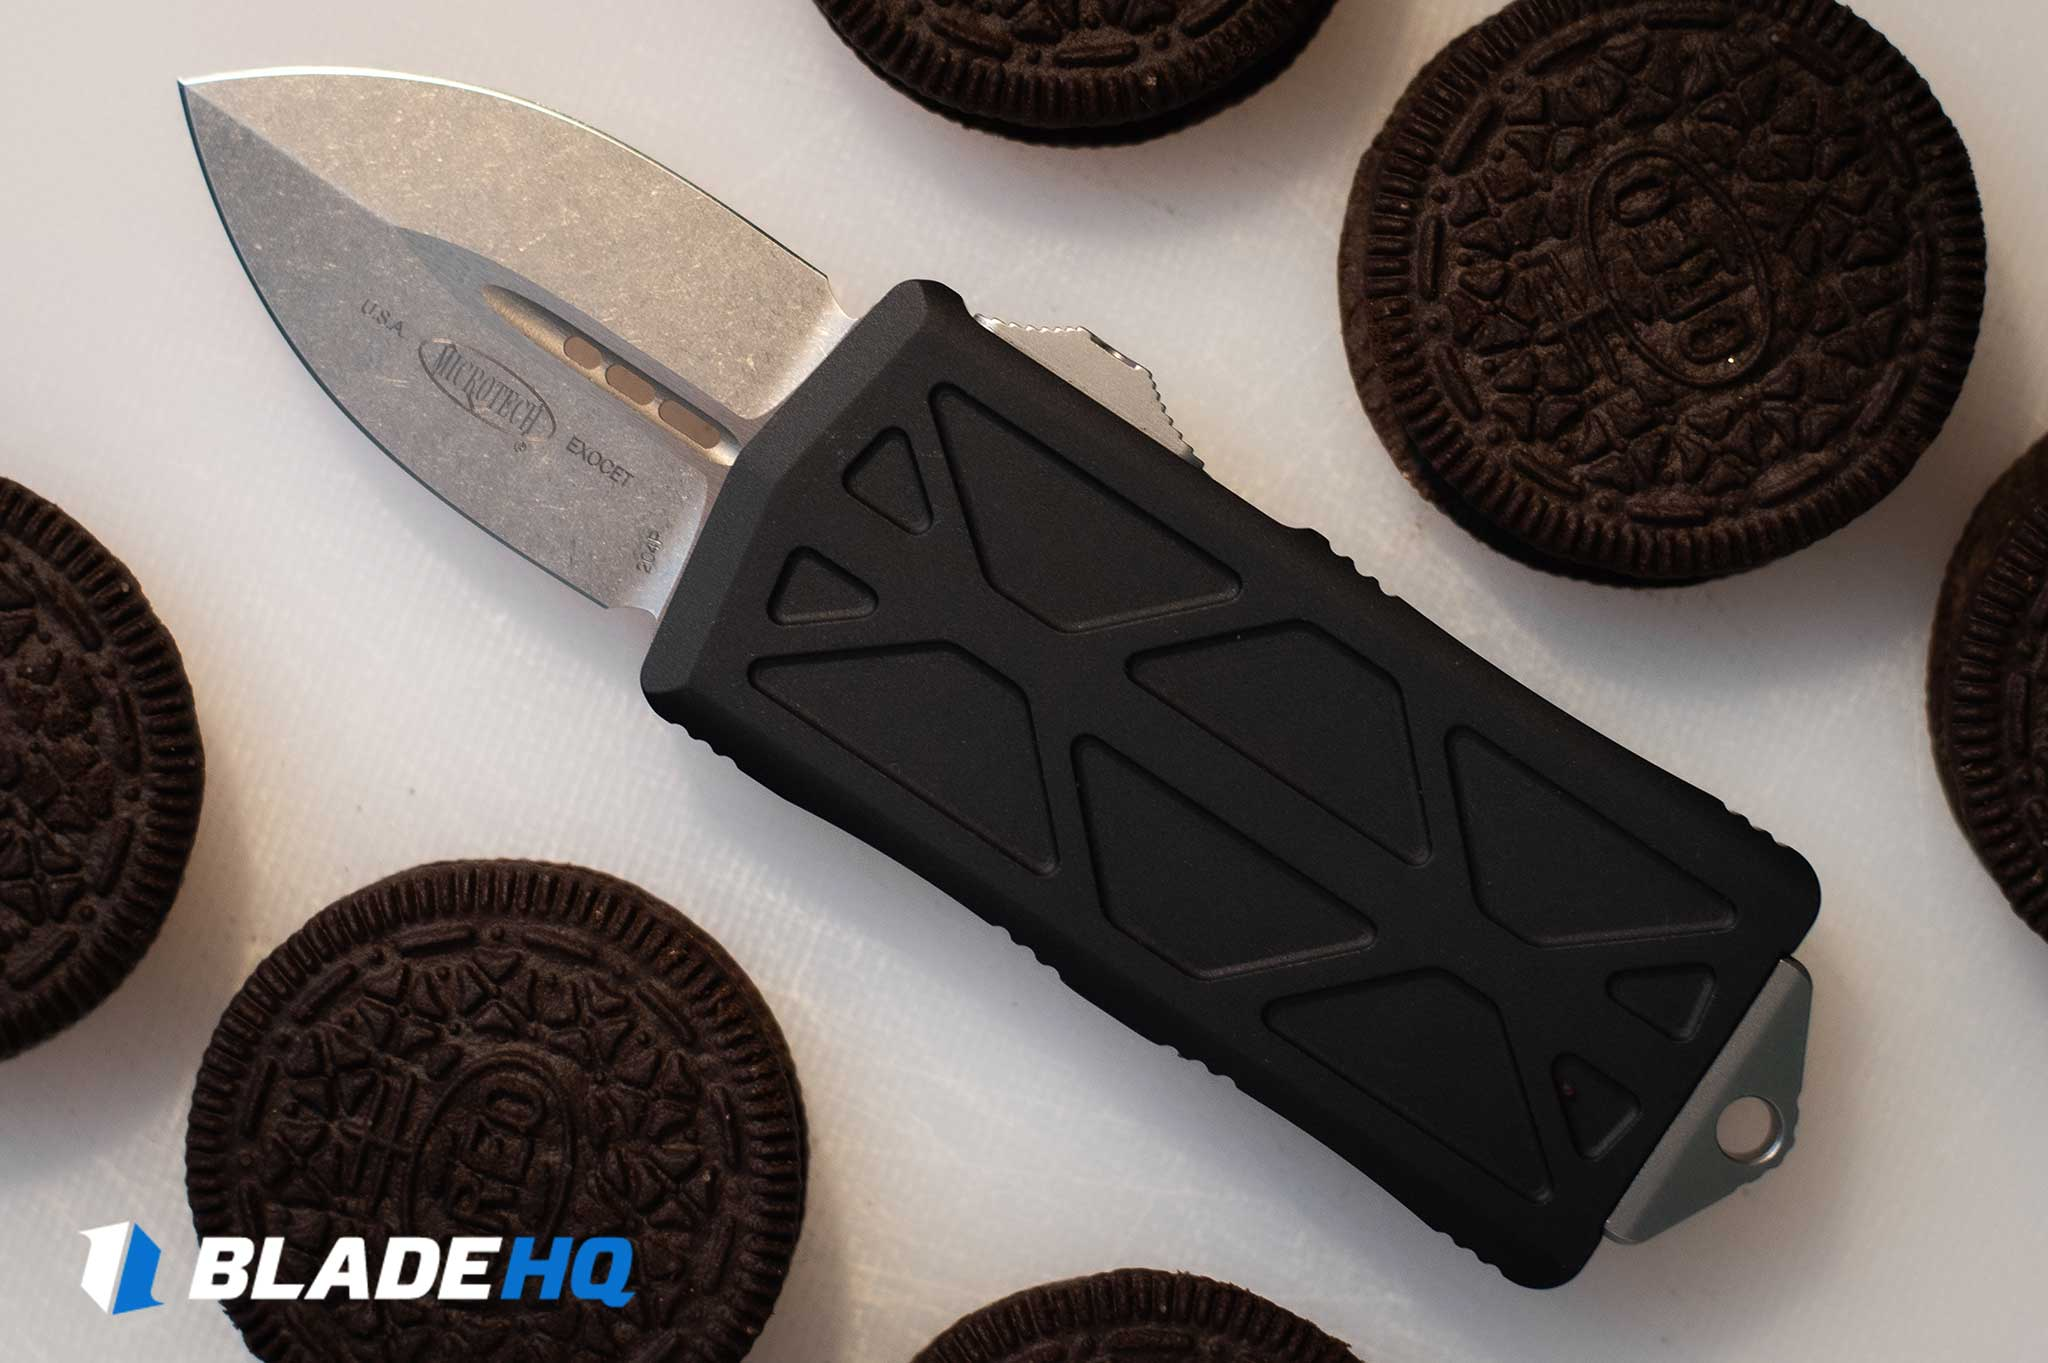 Microtech Exocet Knife Ease of Carry